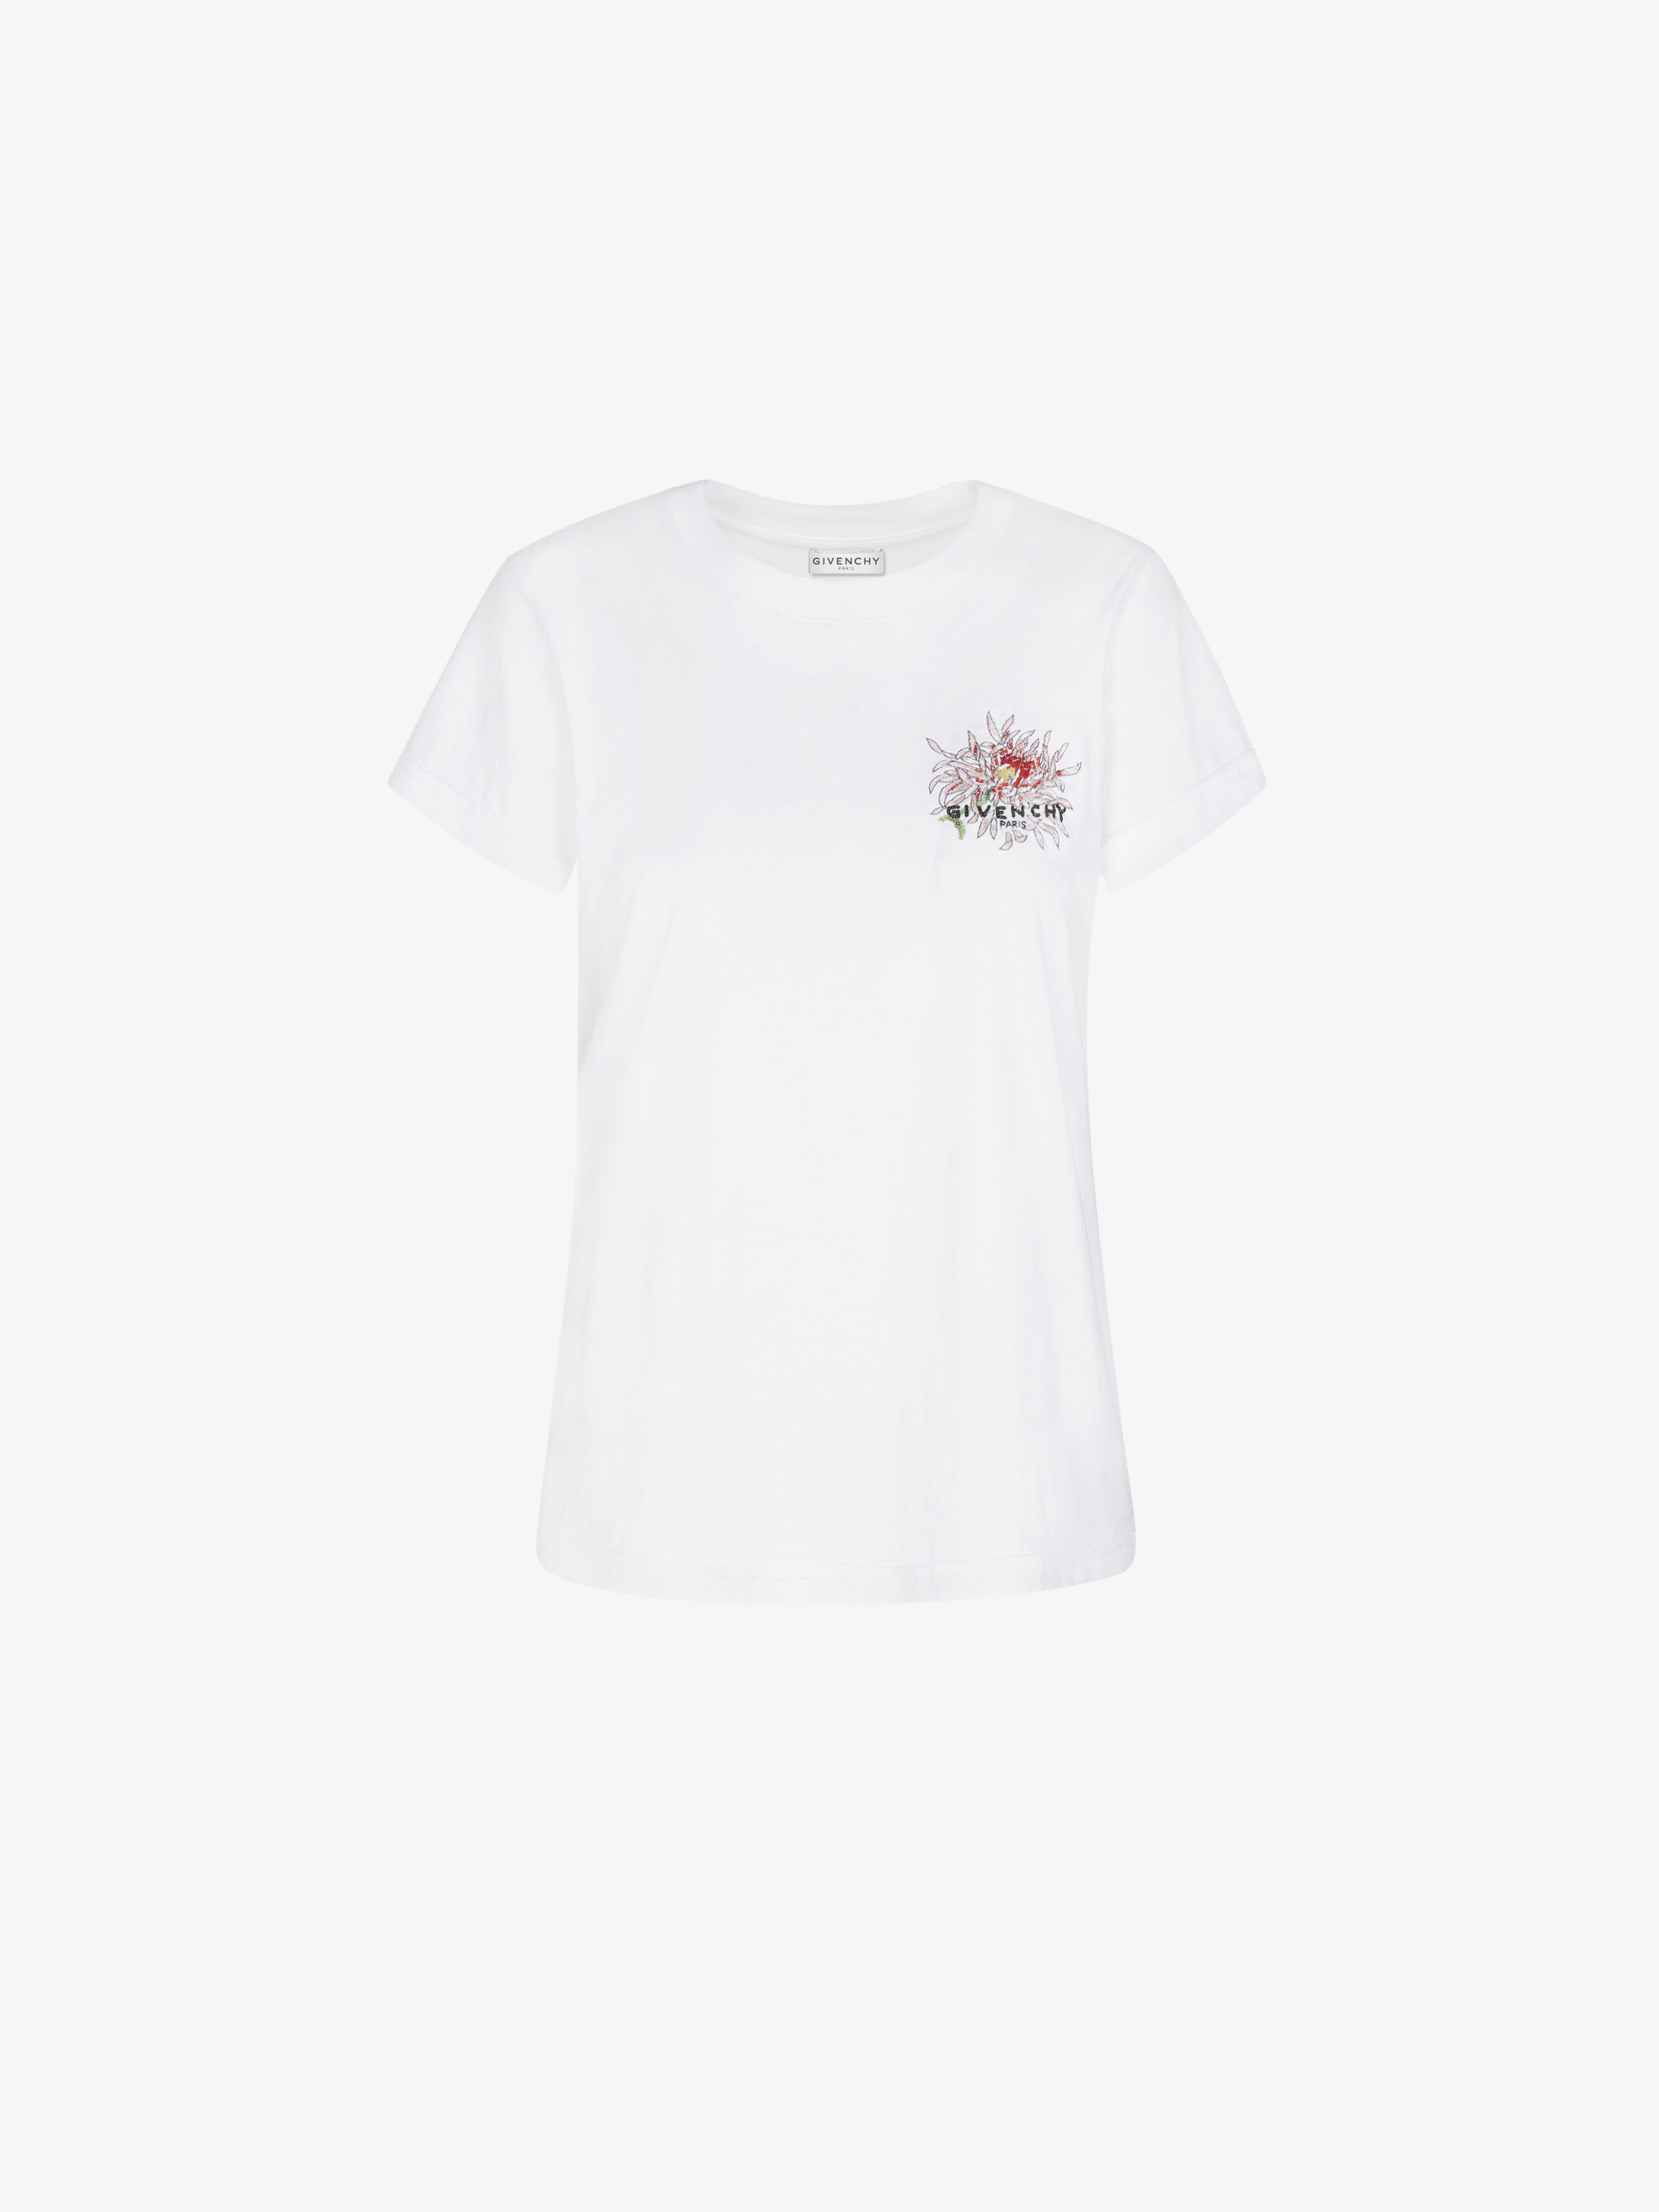 T-shirt slim fit con ricamo a fiori GIVENCHY